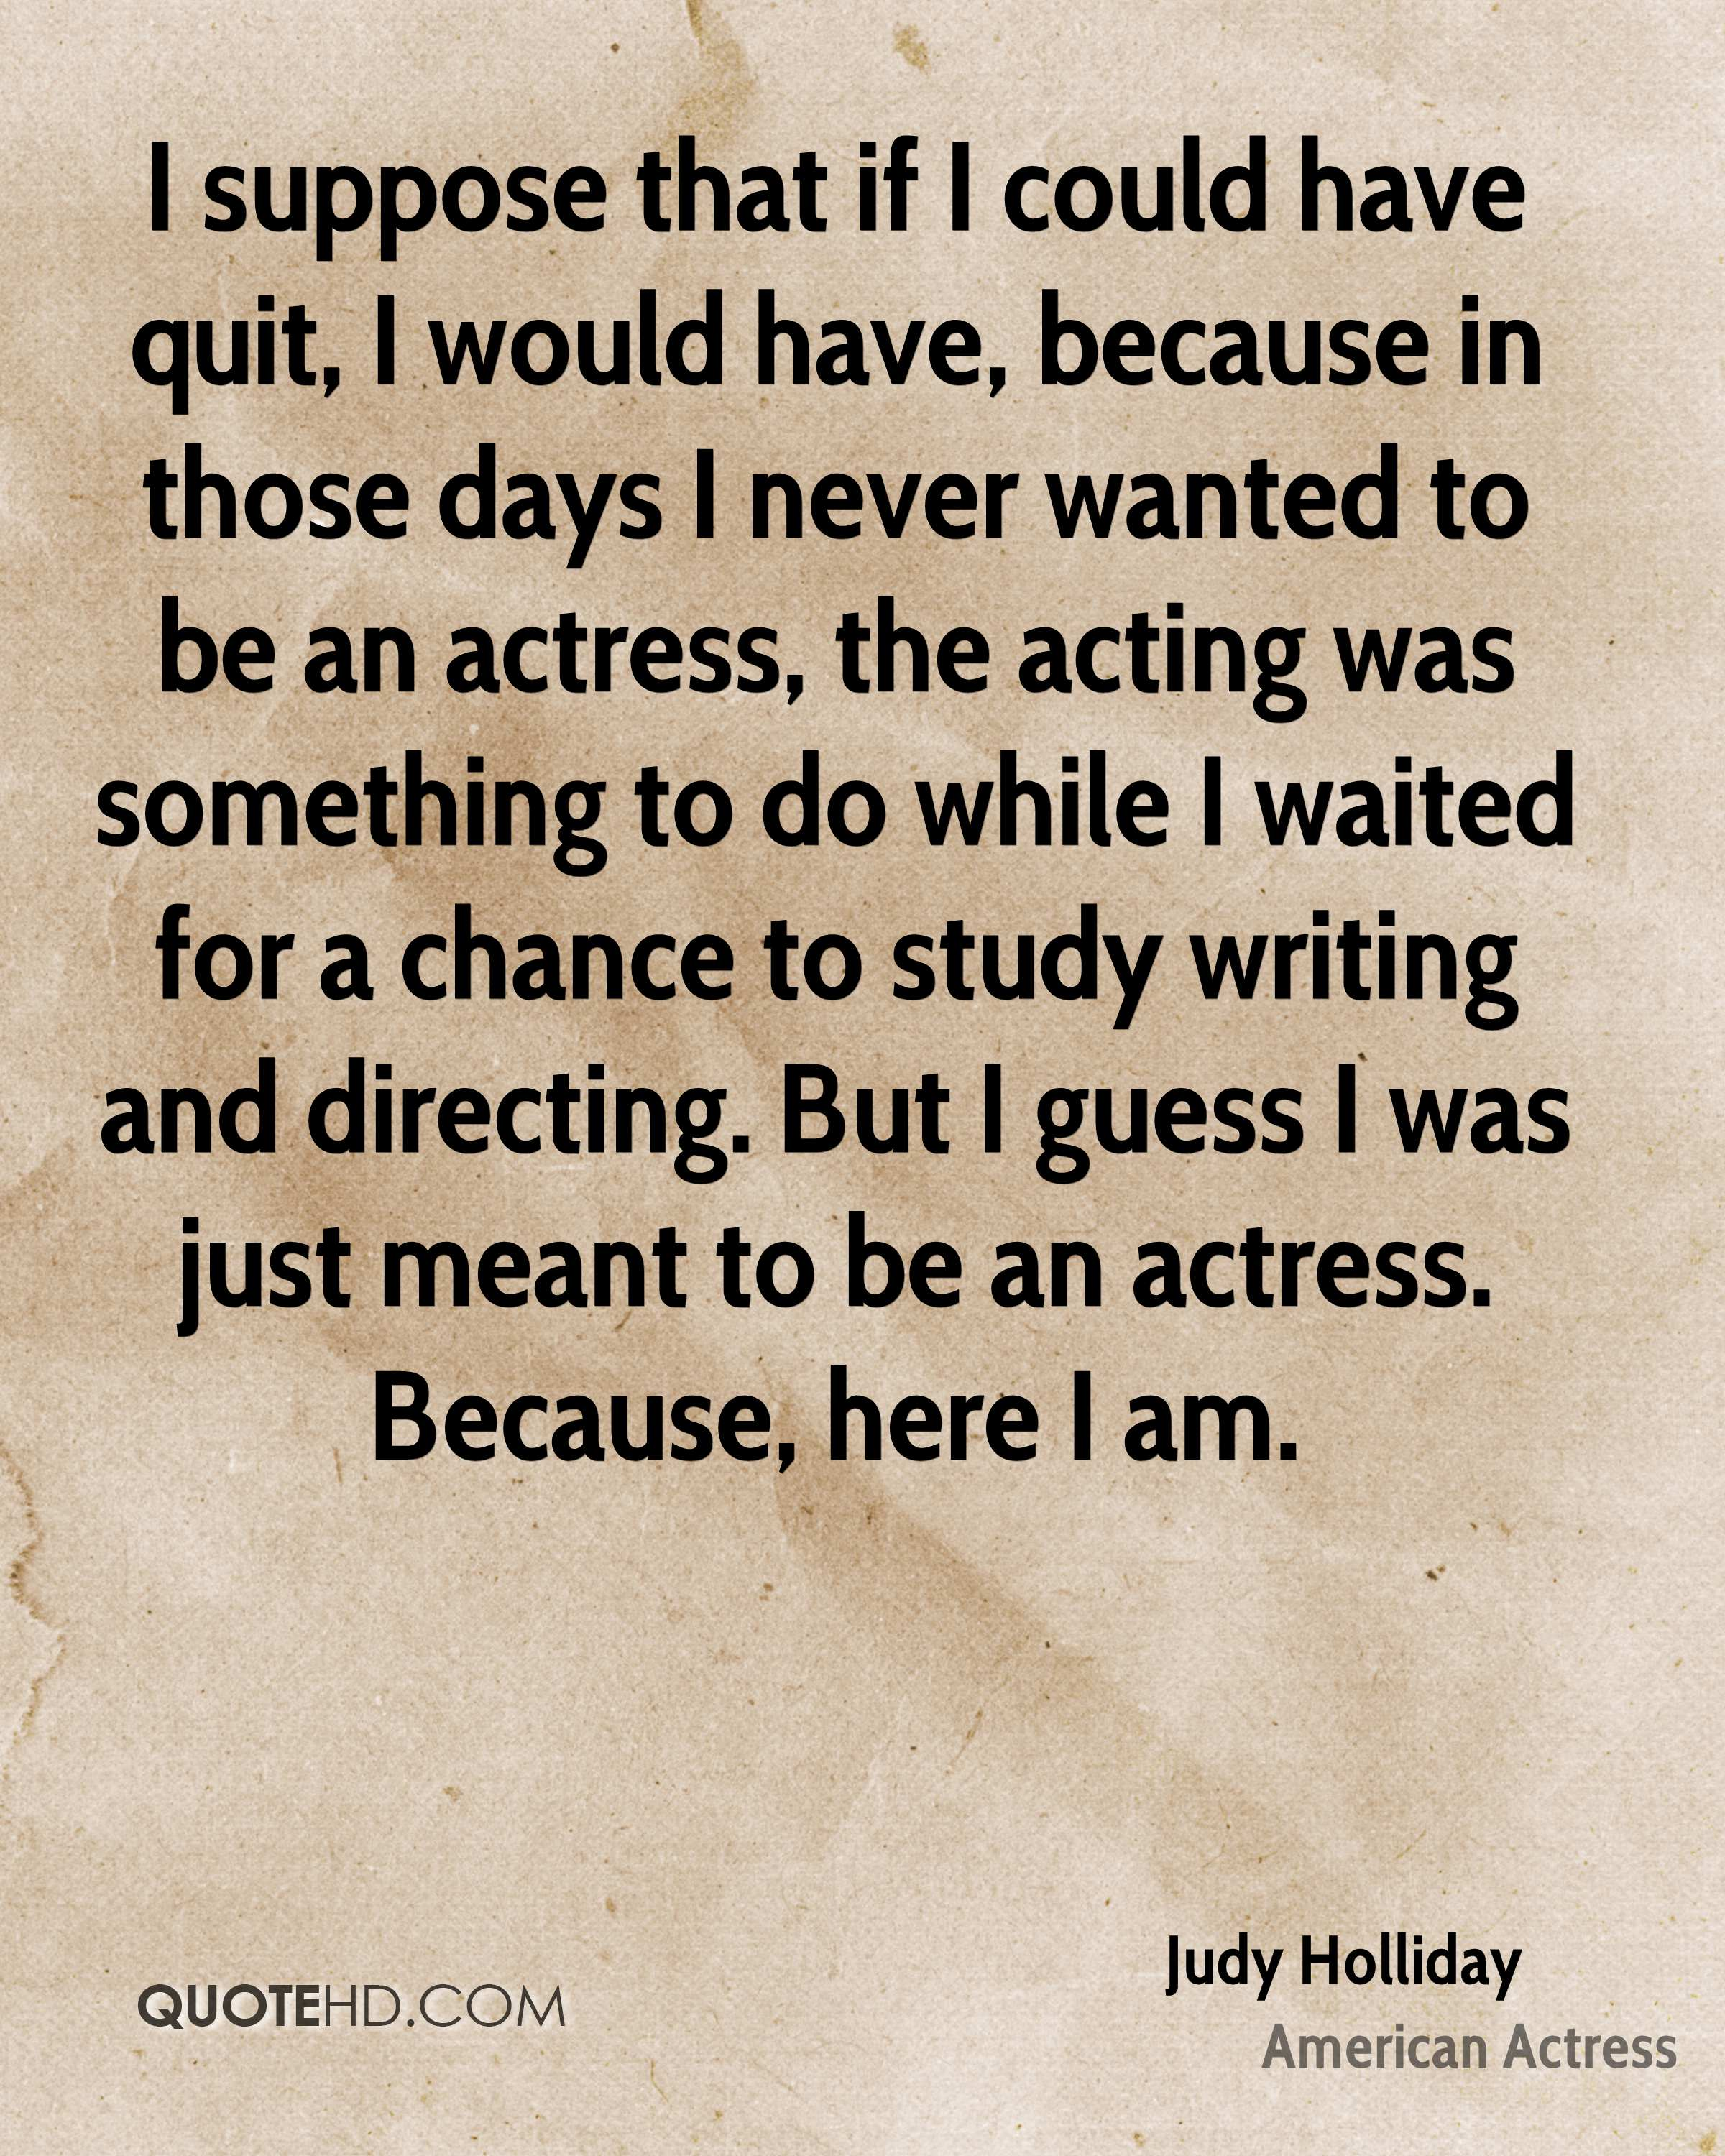 I suppose that if I could have quit, I would have, because in those days I never wanted to be an actress, the acting was something to do while I waited for a chance to study writing and directing. But I guess I was just meant to be an actress. Because, here I am.